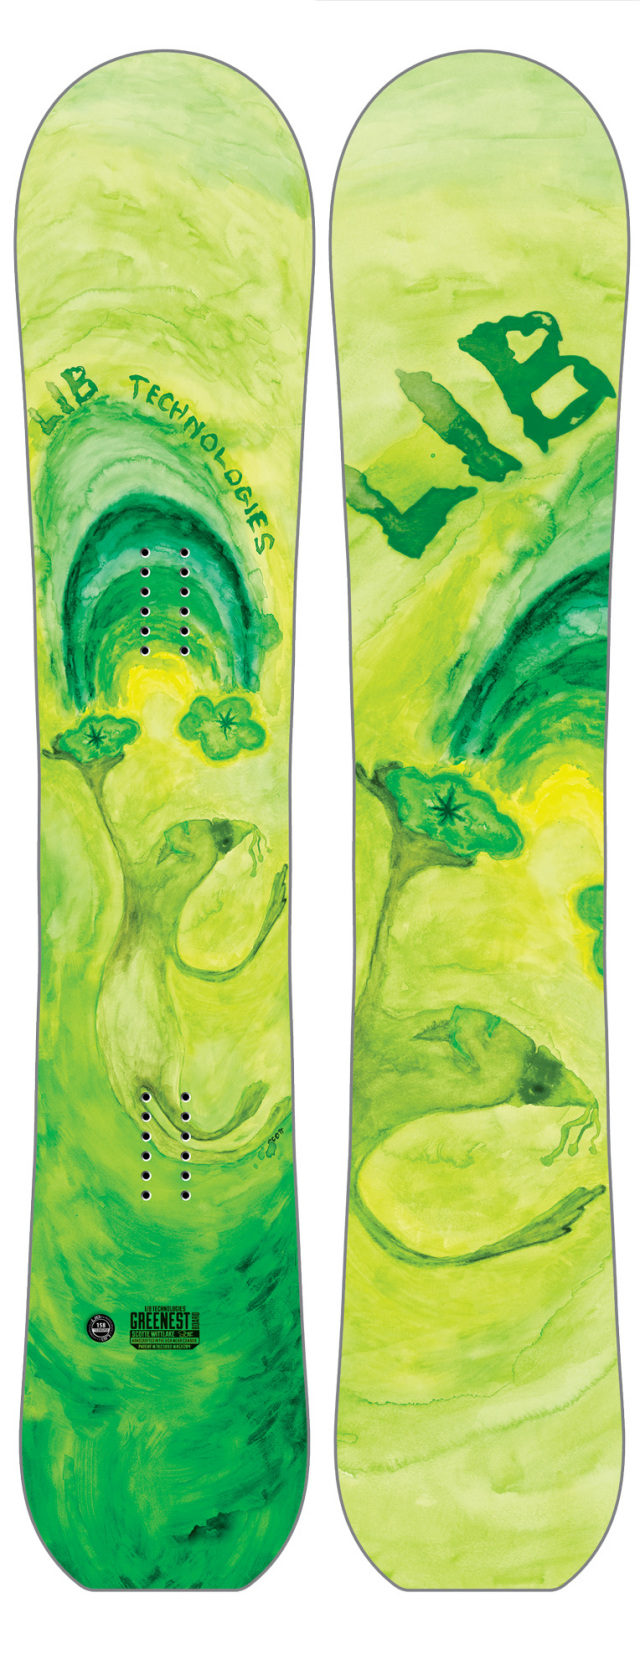 LIB-TECH WORLD'S GREENEST BOARD HP <C3BTX> -SCOTT E WITTLAKE PRO MODEL 16-17NEWMODEL!! 30%OFF SALE!!